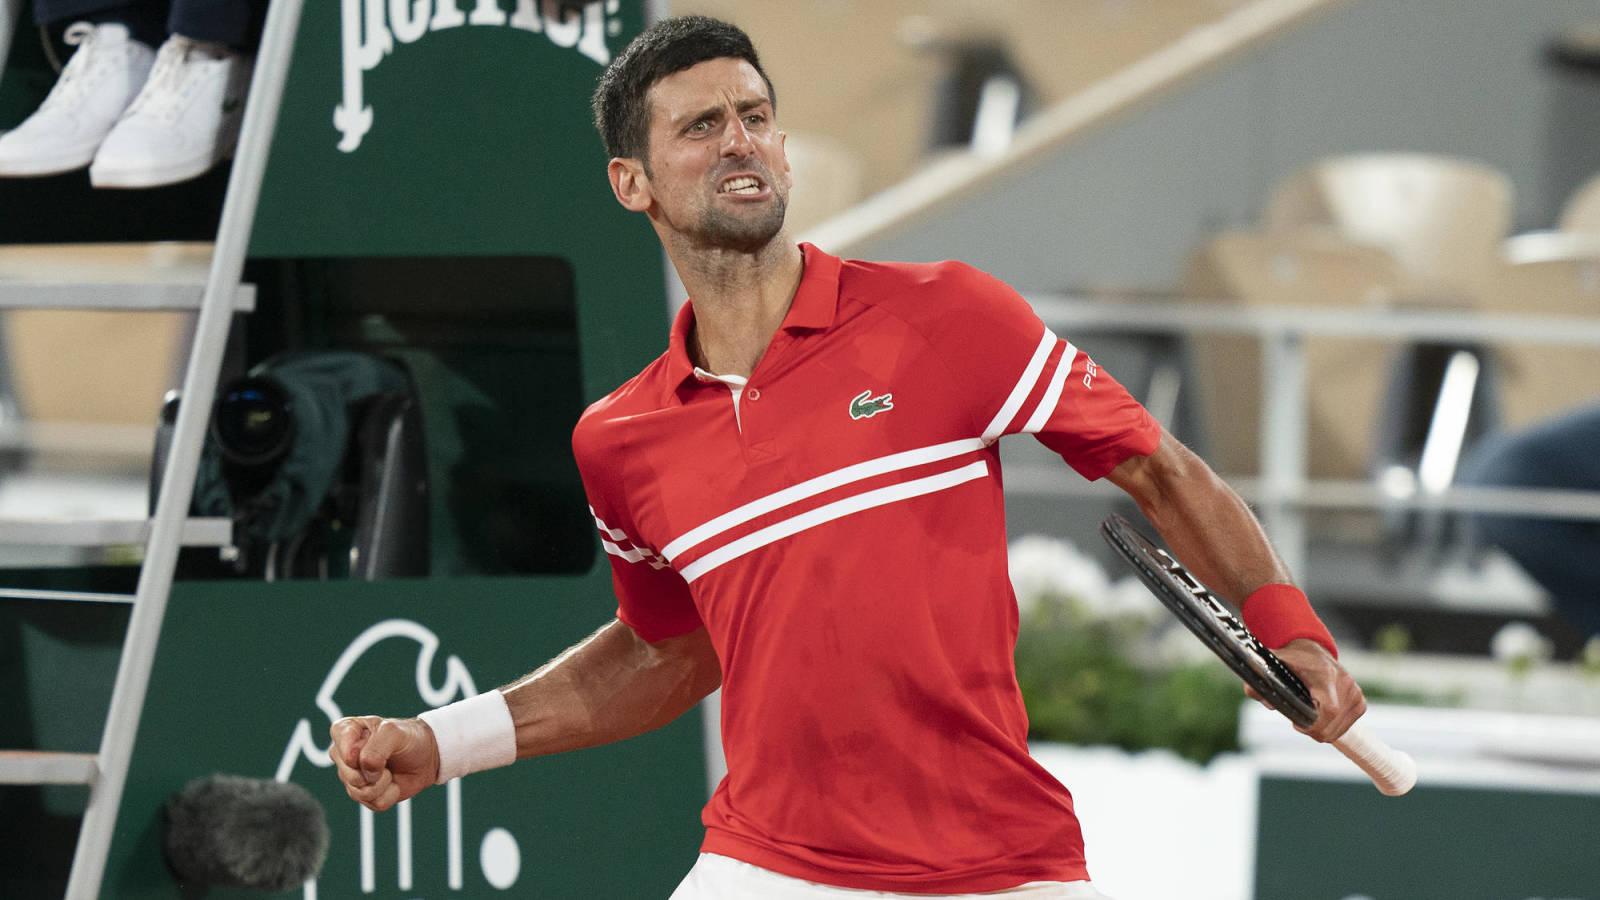 french open lets fans stay past curfew watch end jpg?v=1.